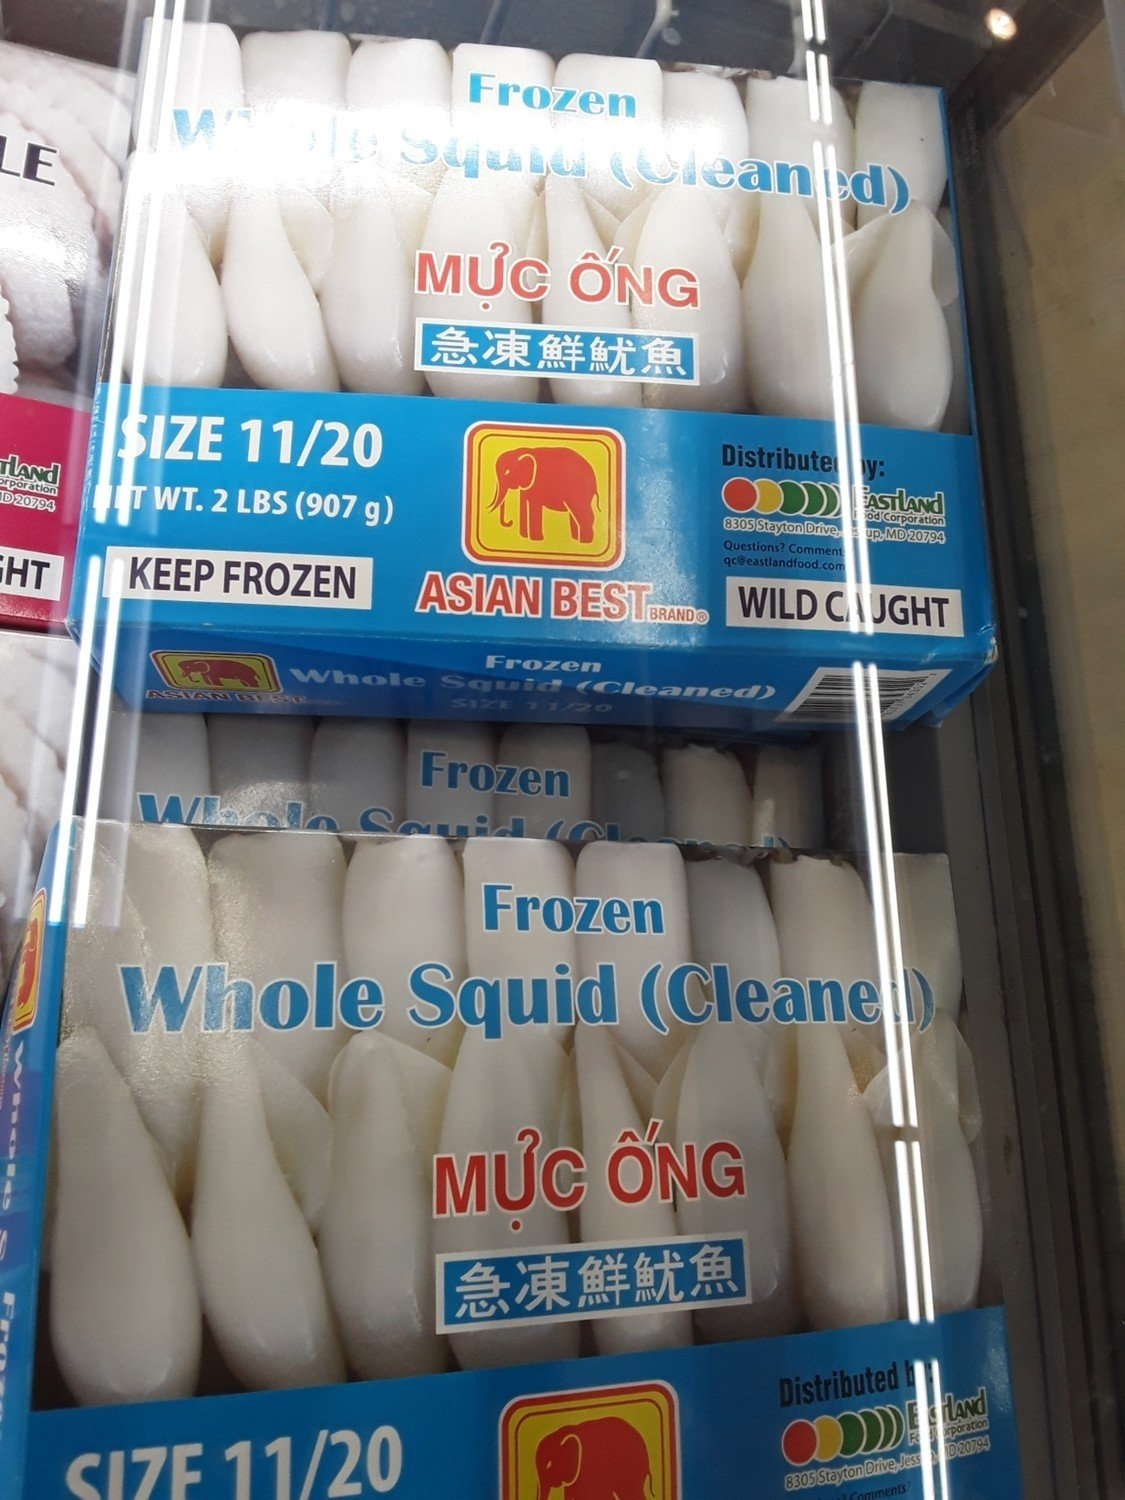 【Welfresh Seafood】Frozen Whole Squid(cleaned)急冻鲜鱿鱼 2lb(每天上午9点截单)